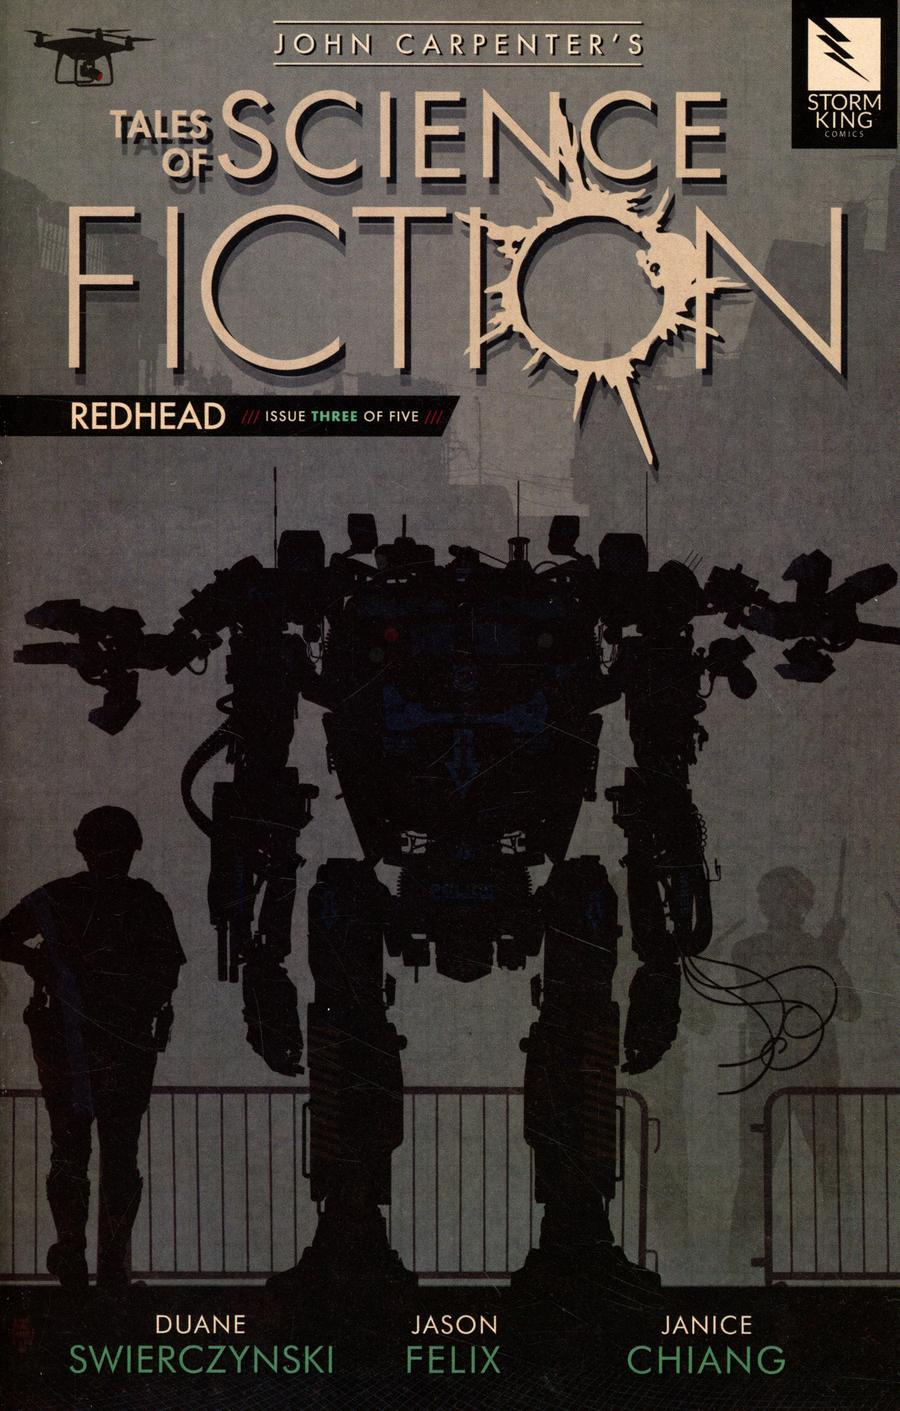 John Carpenters Tales Of Science Fiction Redhead #3 Cover A Rail